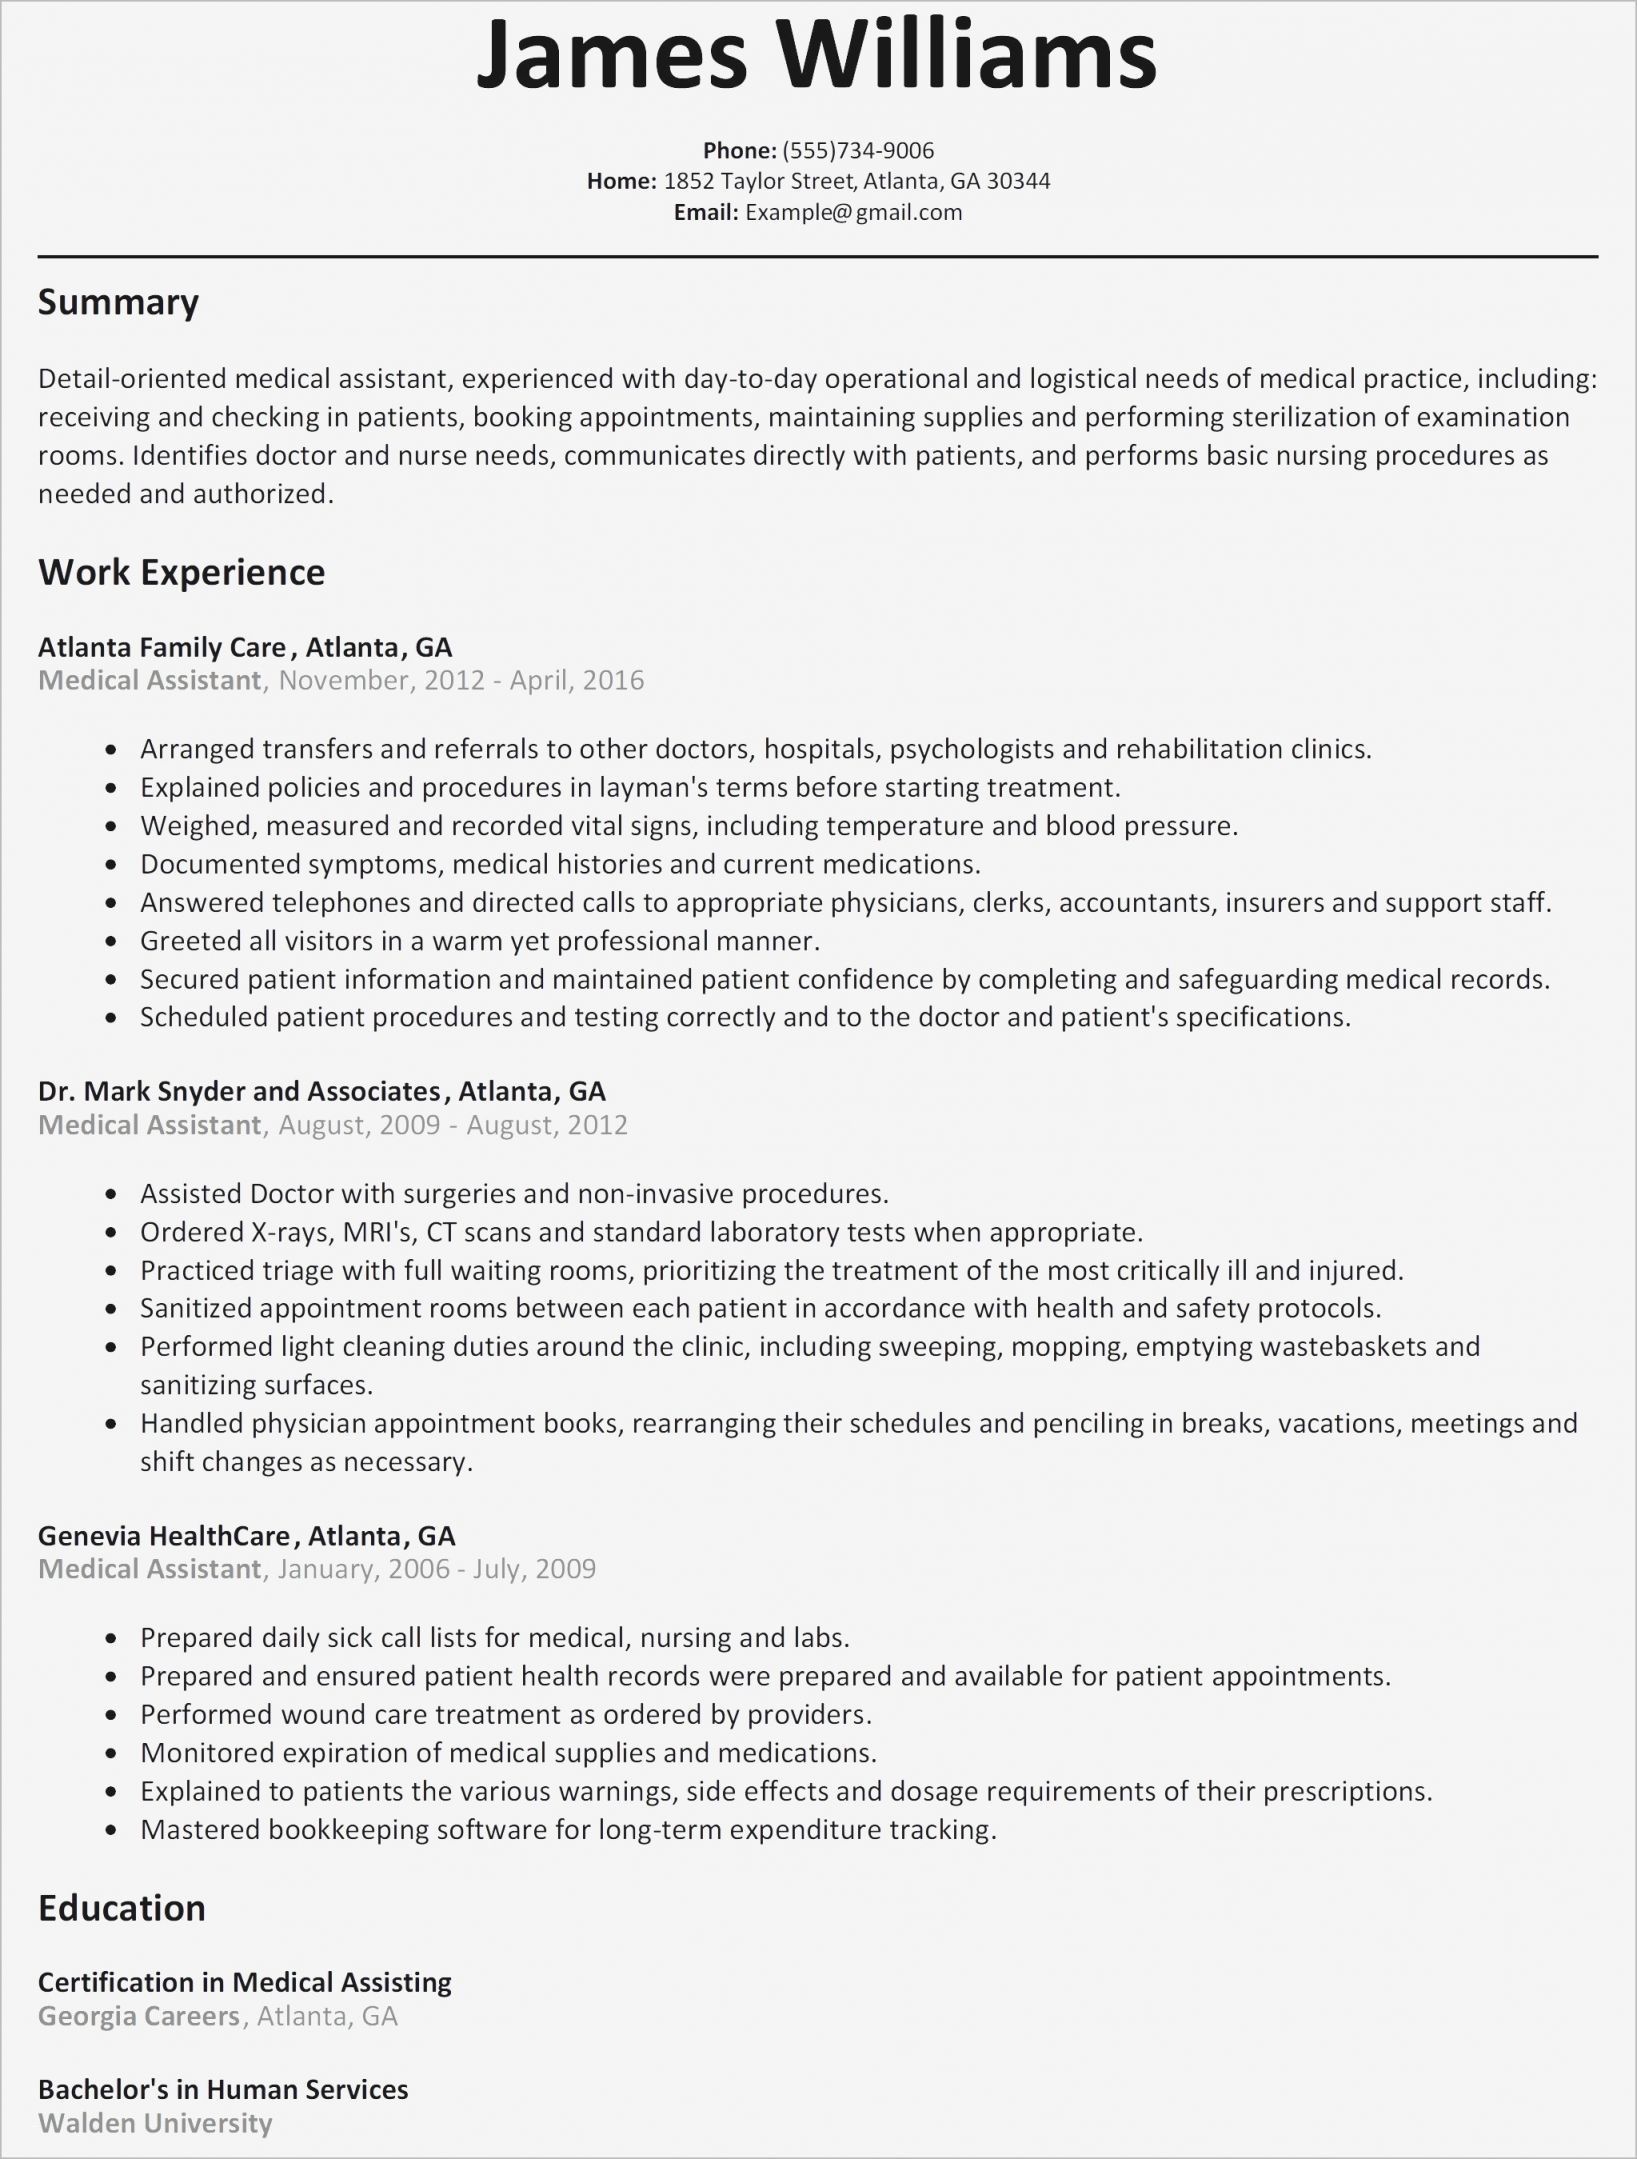 Resume Template for Teaching assistant - 17 Resume Examples for Teacher assistant